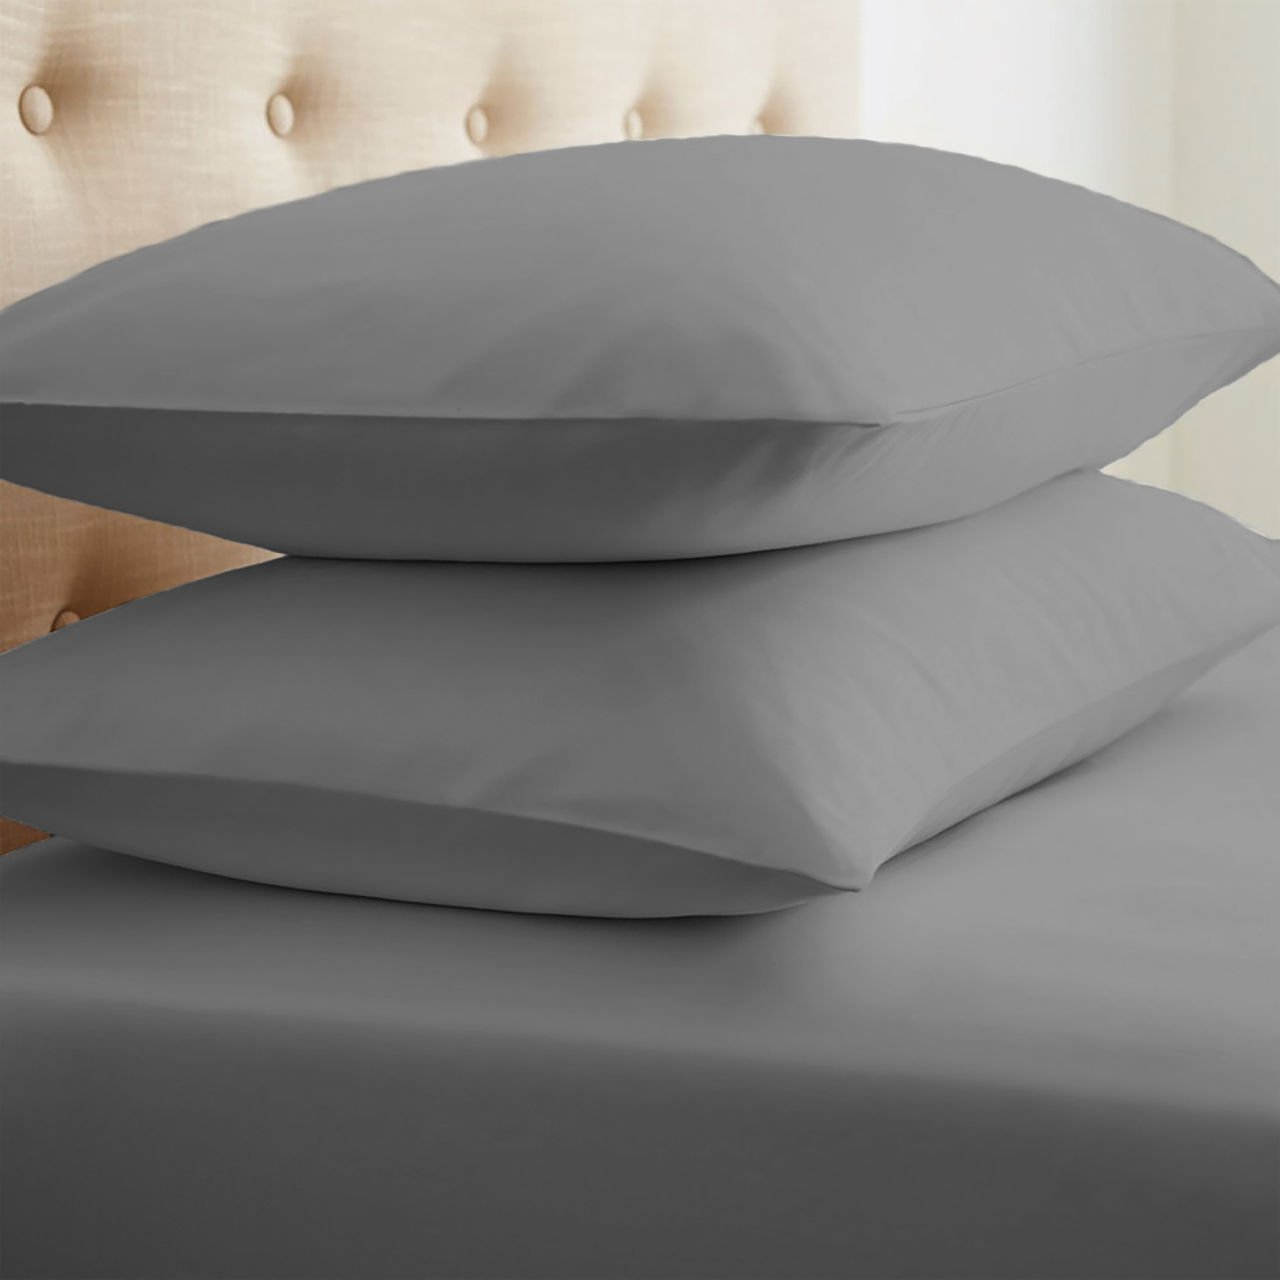 ienjoy Home Collection Premium Ultra Soft Pillowcase Set, Standard, Gray